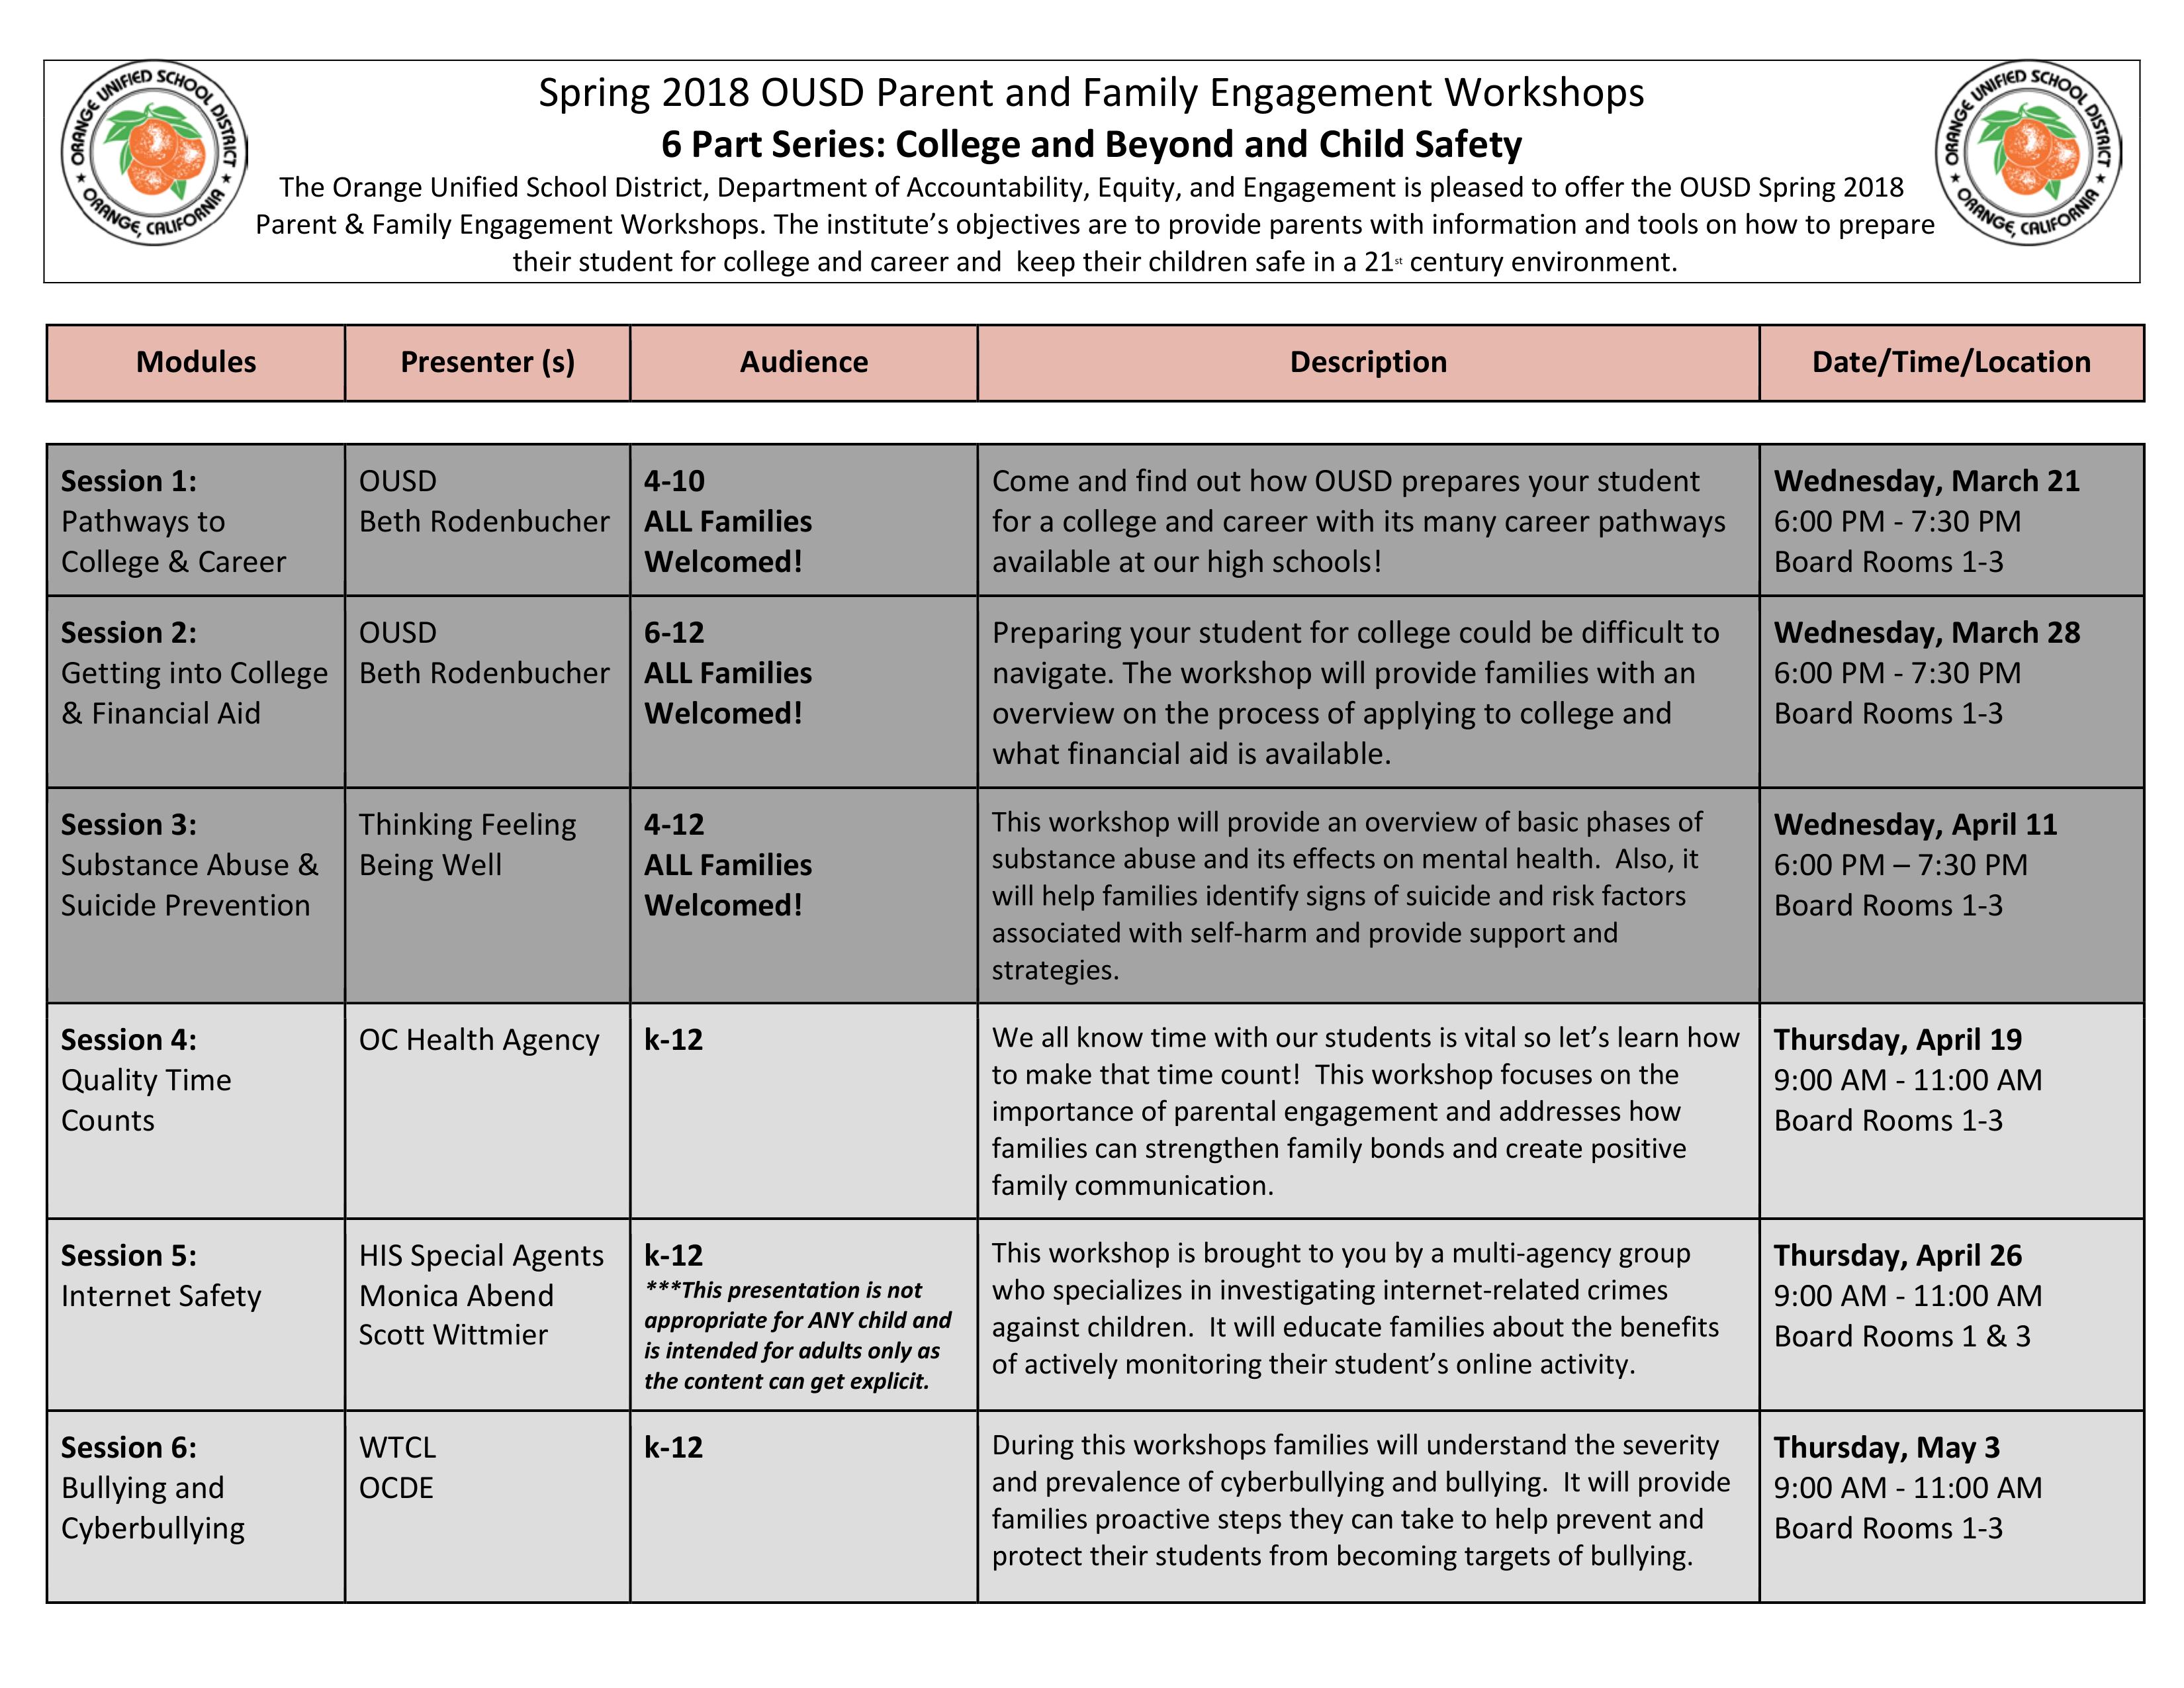 Spring 2018 OUSD Parent and Family Engagement Workshops ENGLISH